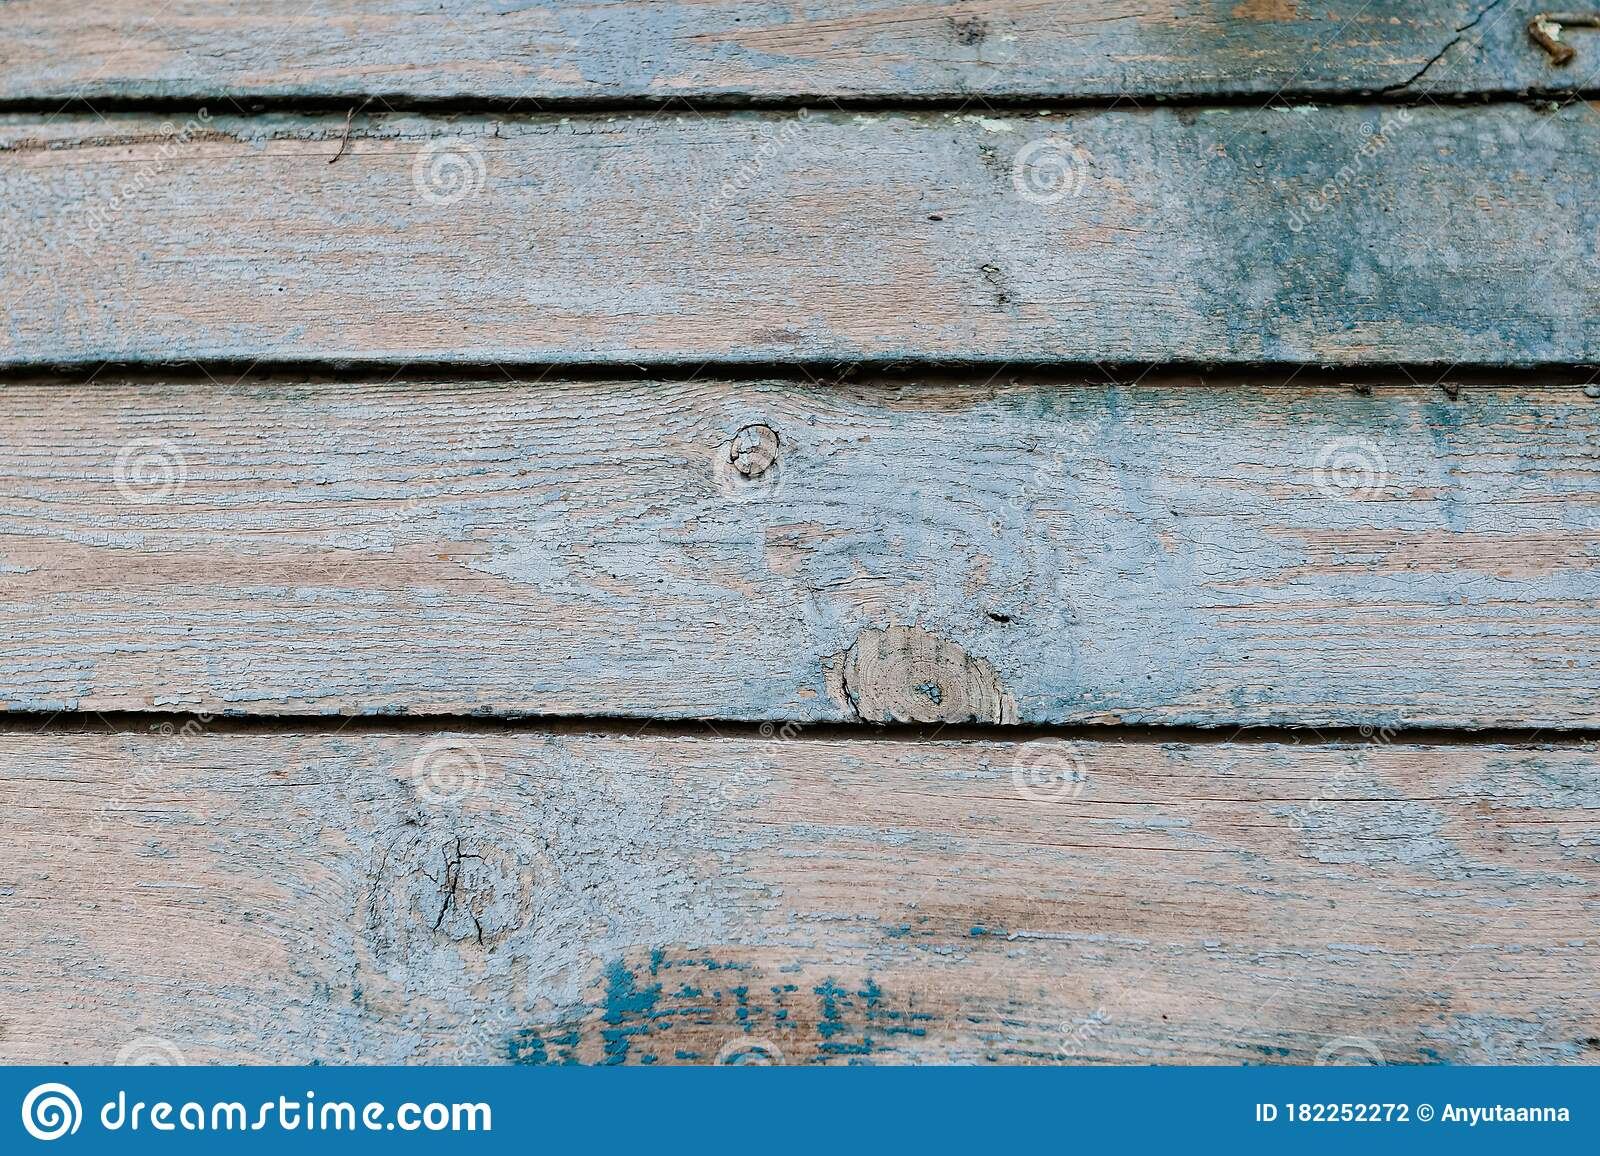 Old Wooden Background With Peeling Paint Vintage Boards With Blue And Green Coating Aquamarine Shades On Brown Stock Photo Image Of Coating Horizontal 182252272